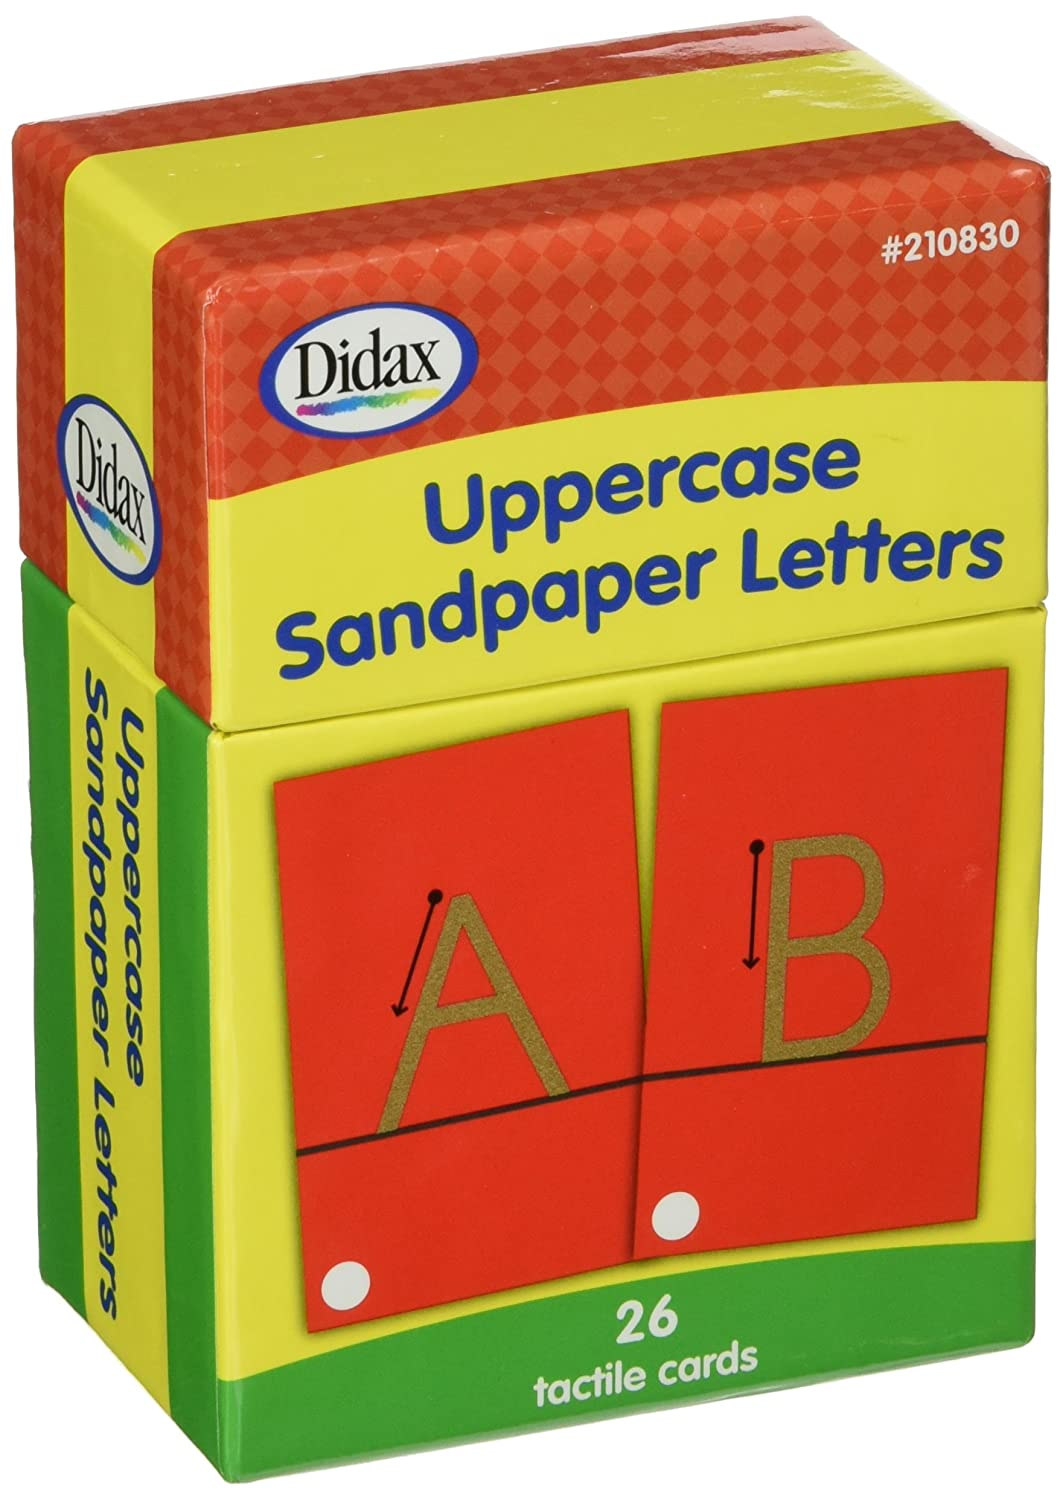 amazoncom didax educational resources sandpaper letters upper case arts crafts sewing